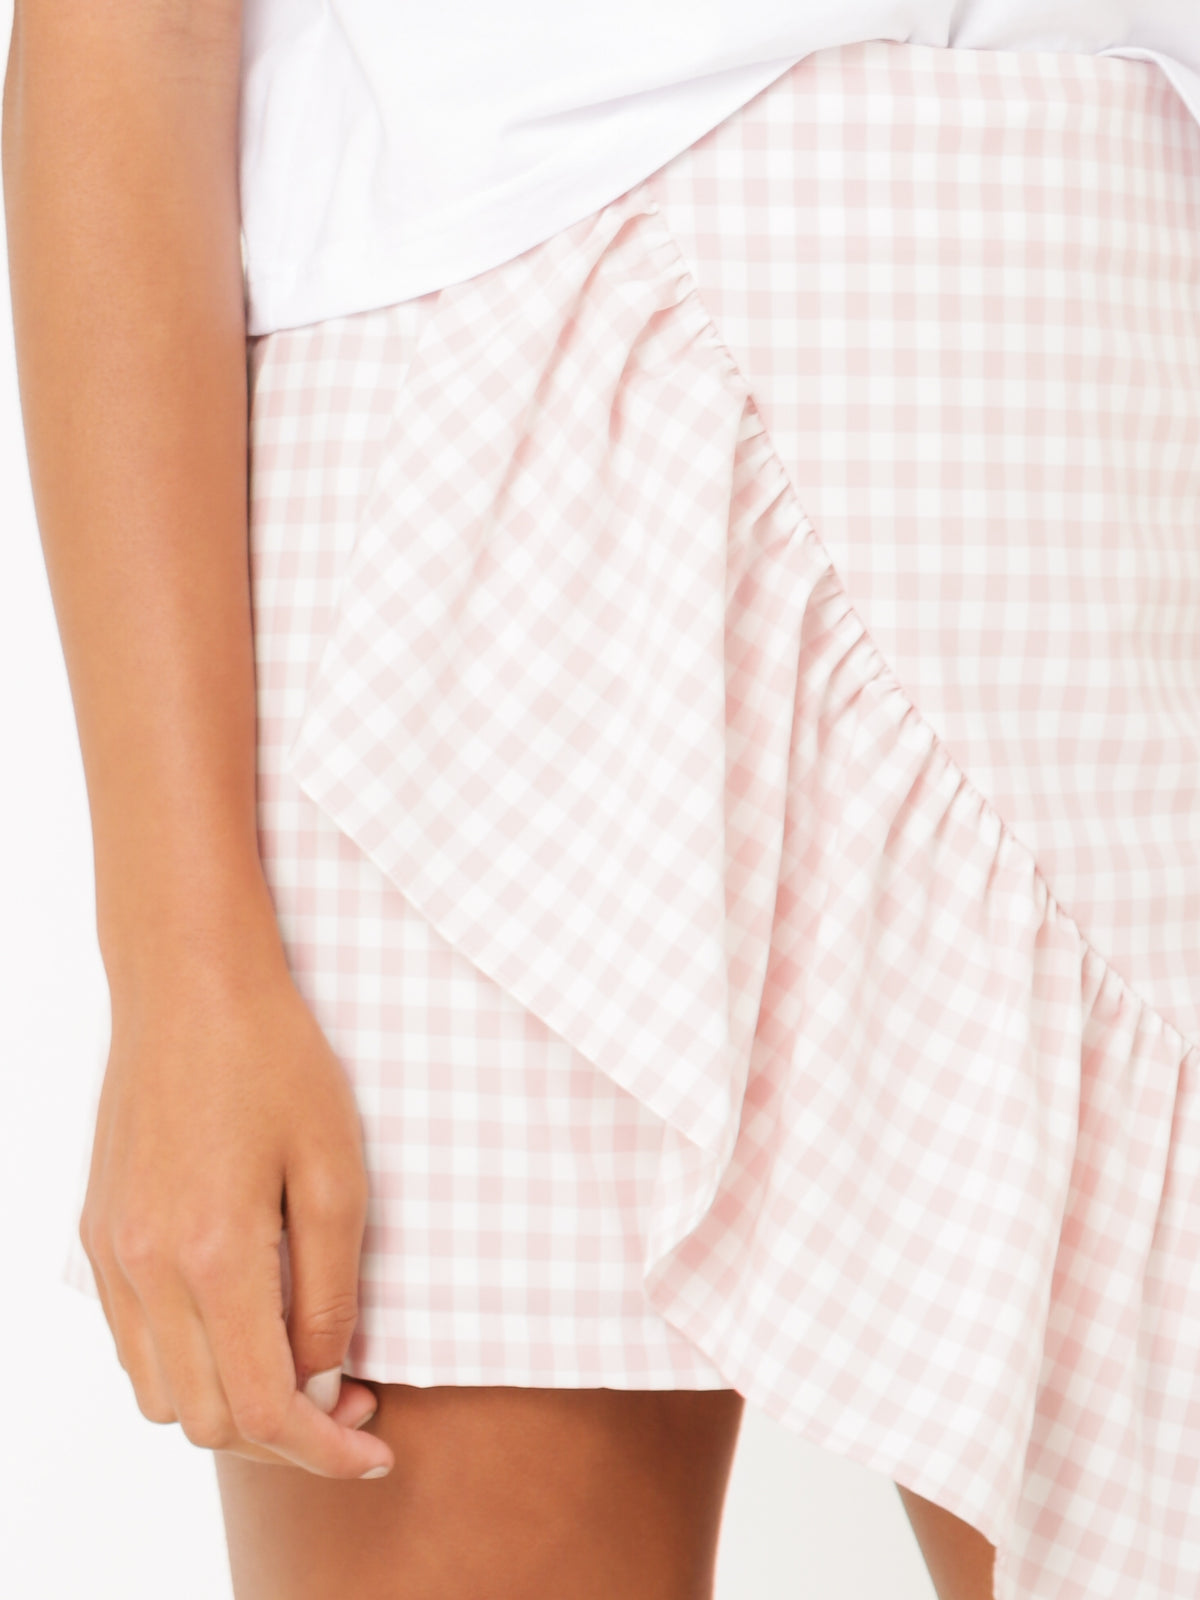 Neve Ruffle Mini Skirt in Pink Gingham Print